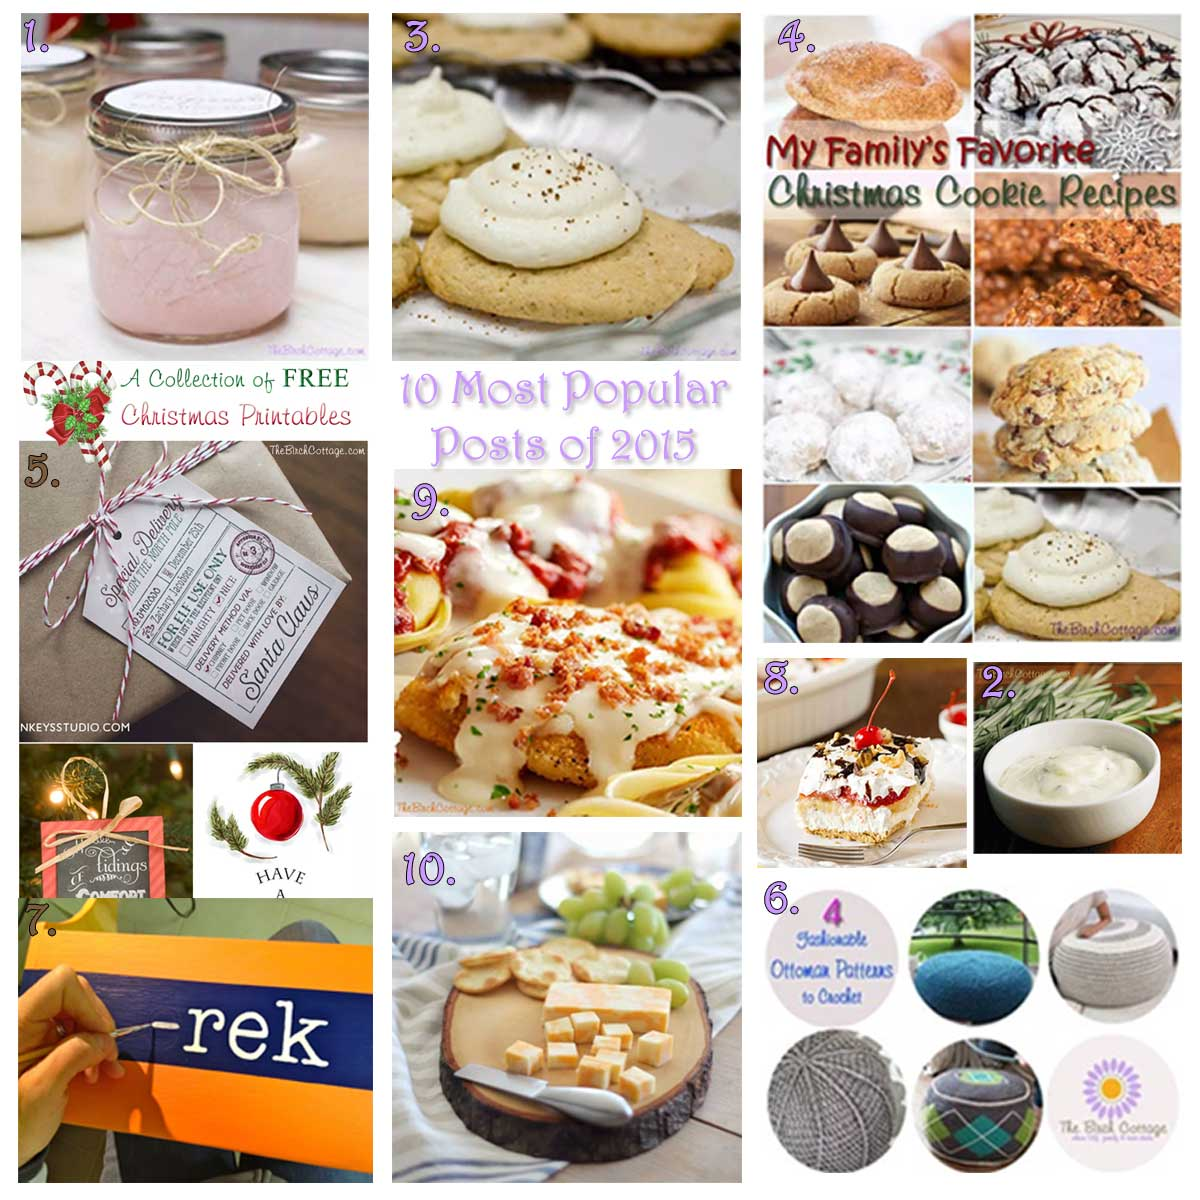 Most Popular Posts of 2015 for the Birch Cottage blog.